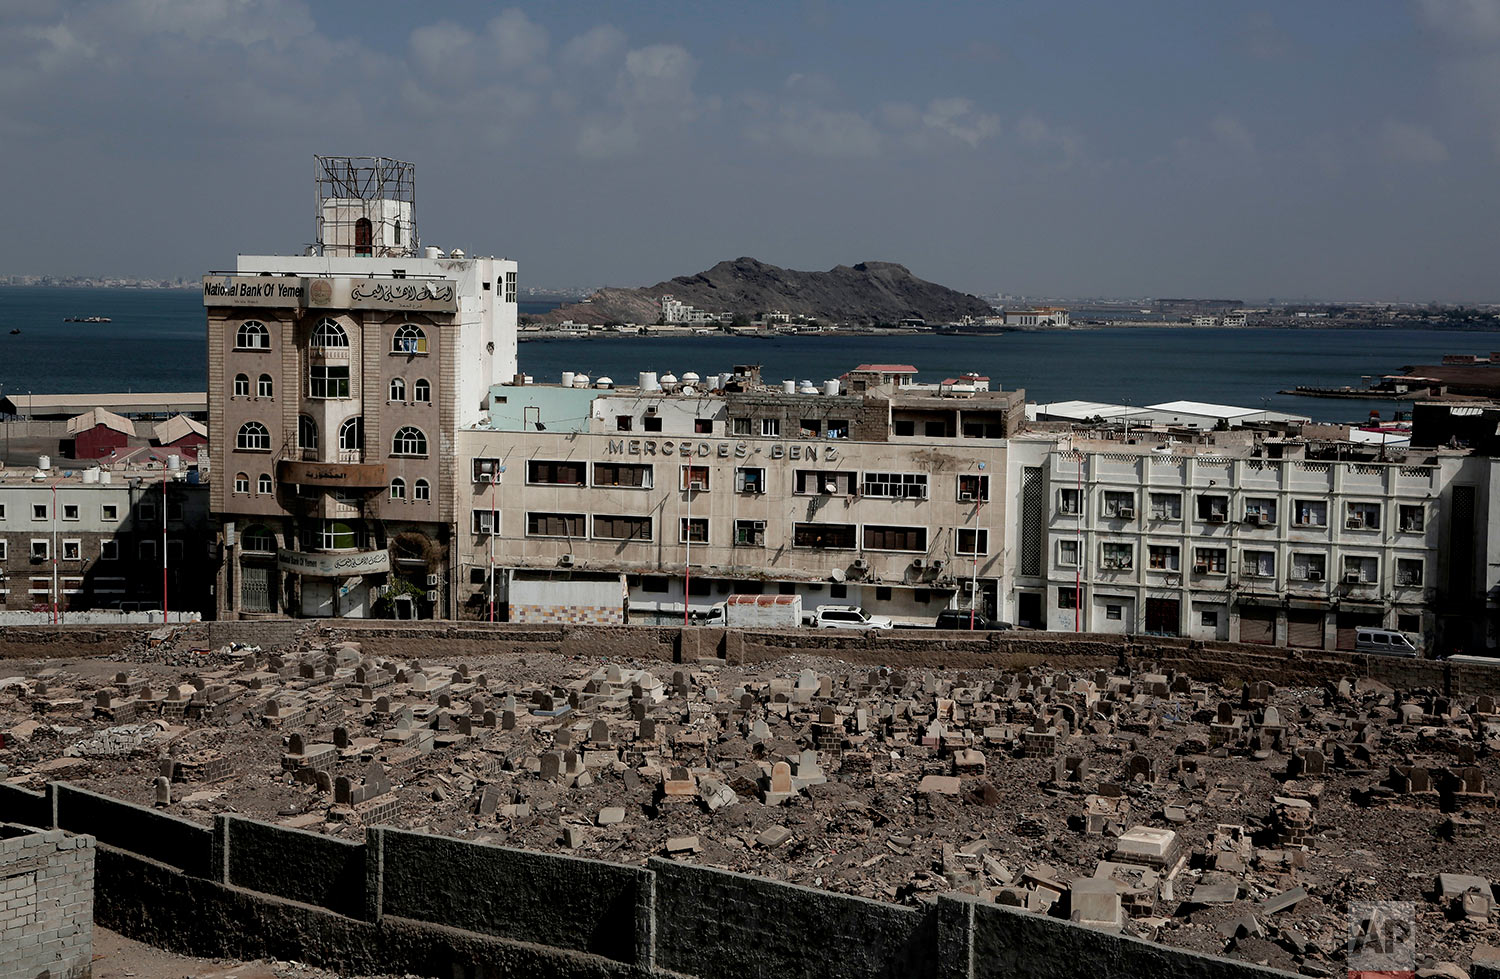 The Mercedes Benz building damaged in Aden, Yemen. Once a peg in a thriving commercial center that sprang up under colonial rule, the dealership sits empty and pockmarked with bullet holes. (AP Photo/Nariman El-Mofty)